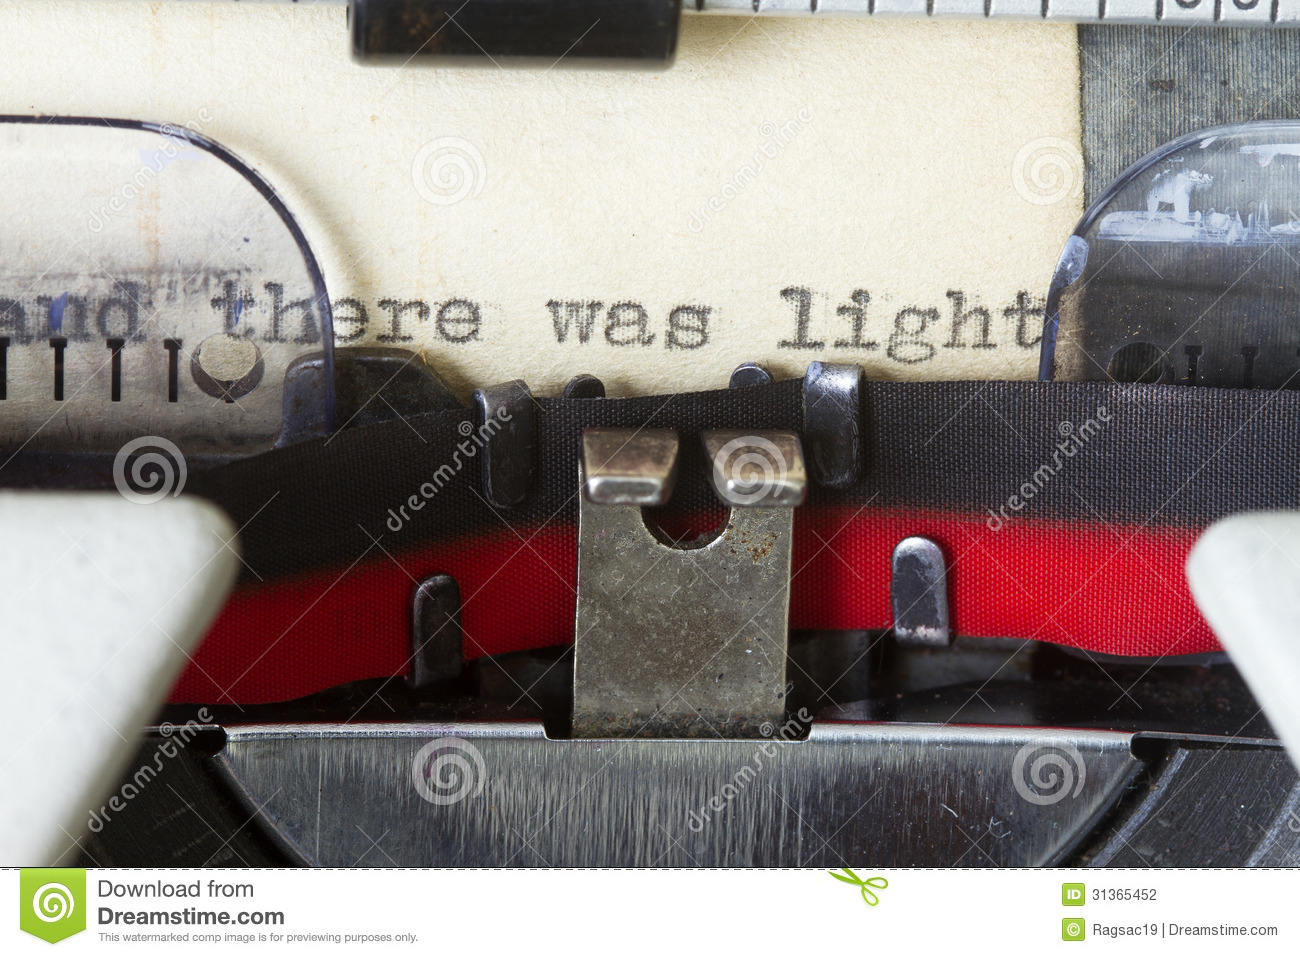 Download Let there be light stock photo. Image of metallic, old - 31365452